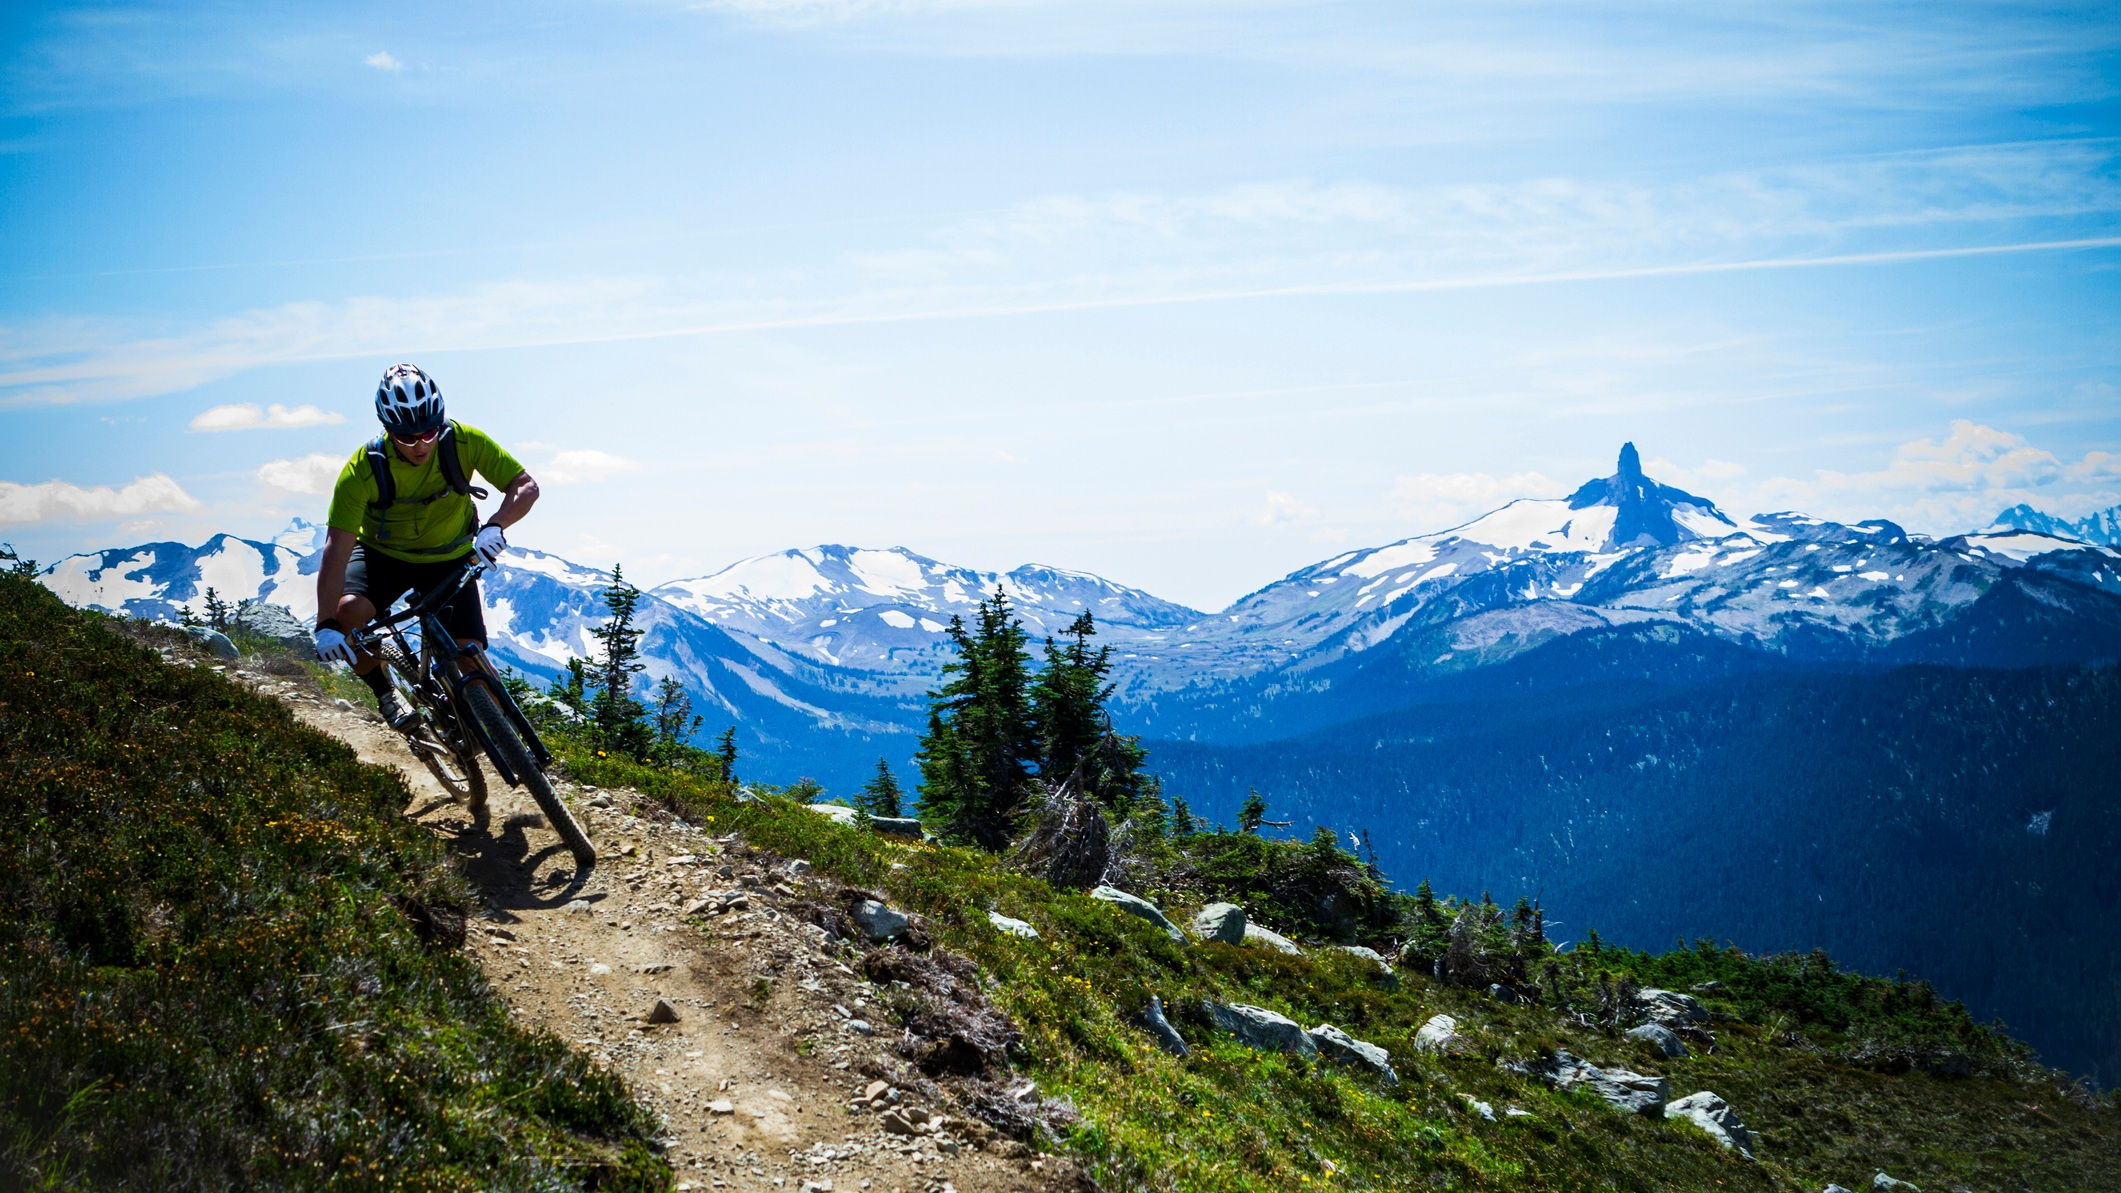 GUIDED TOURS - Ride with local knowledge and experience the real Whistler. Explore wilderness from the valley to the backcountry.